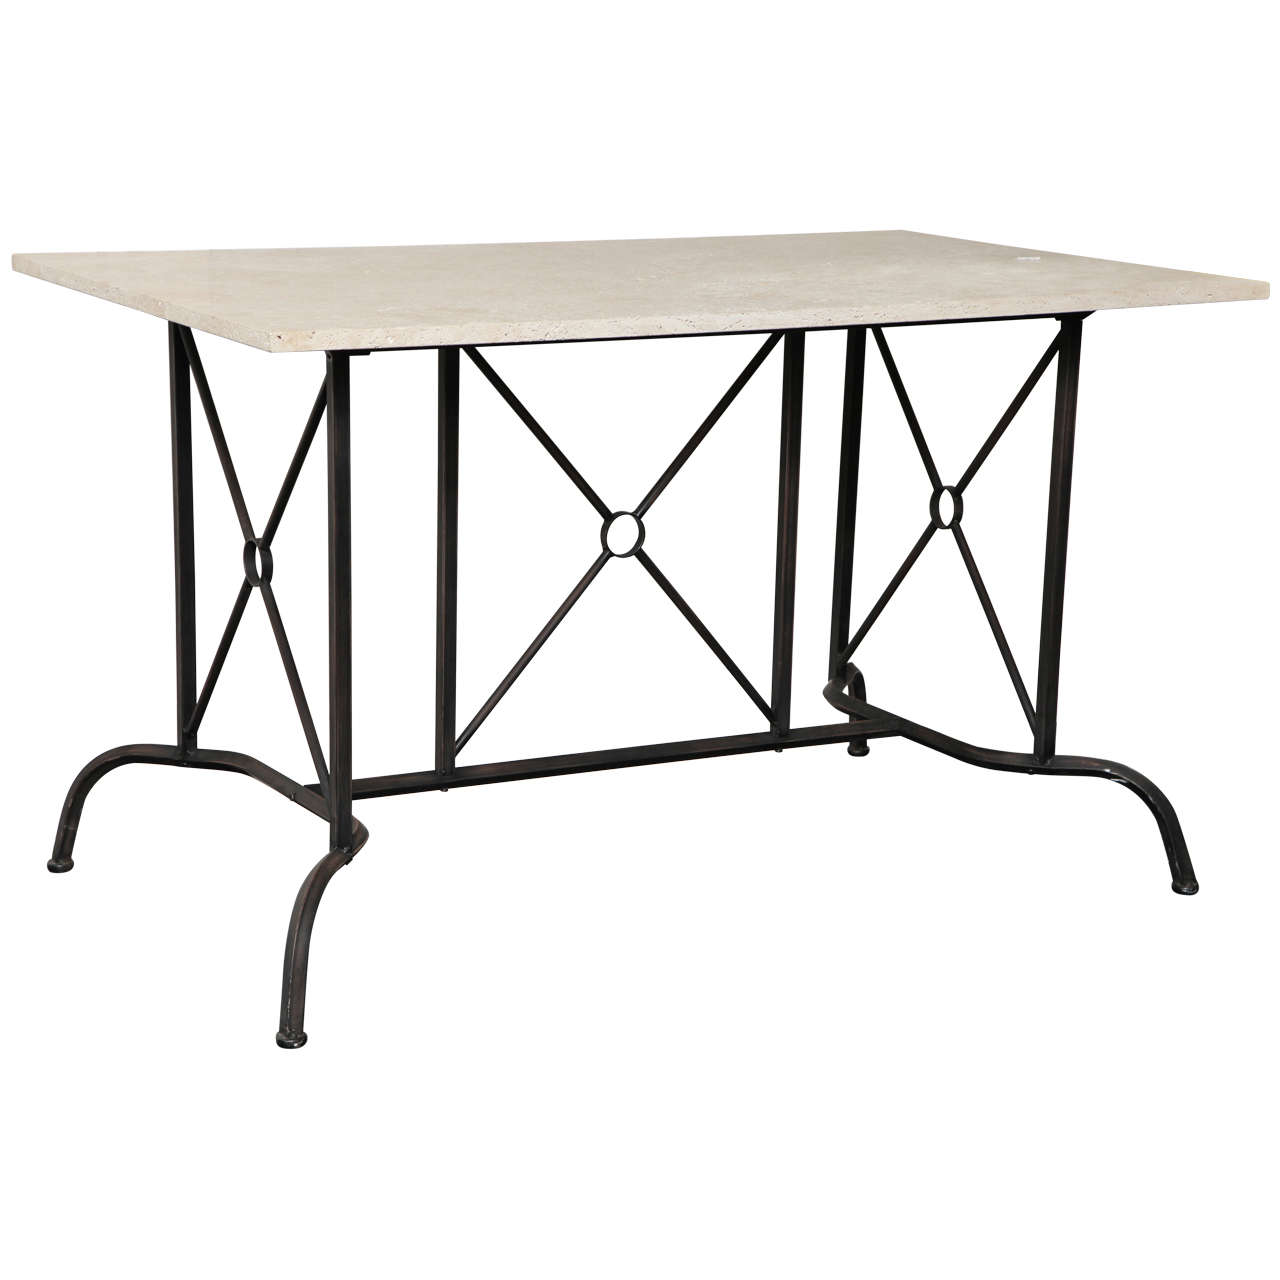 20th Century Patinated Steel Console